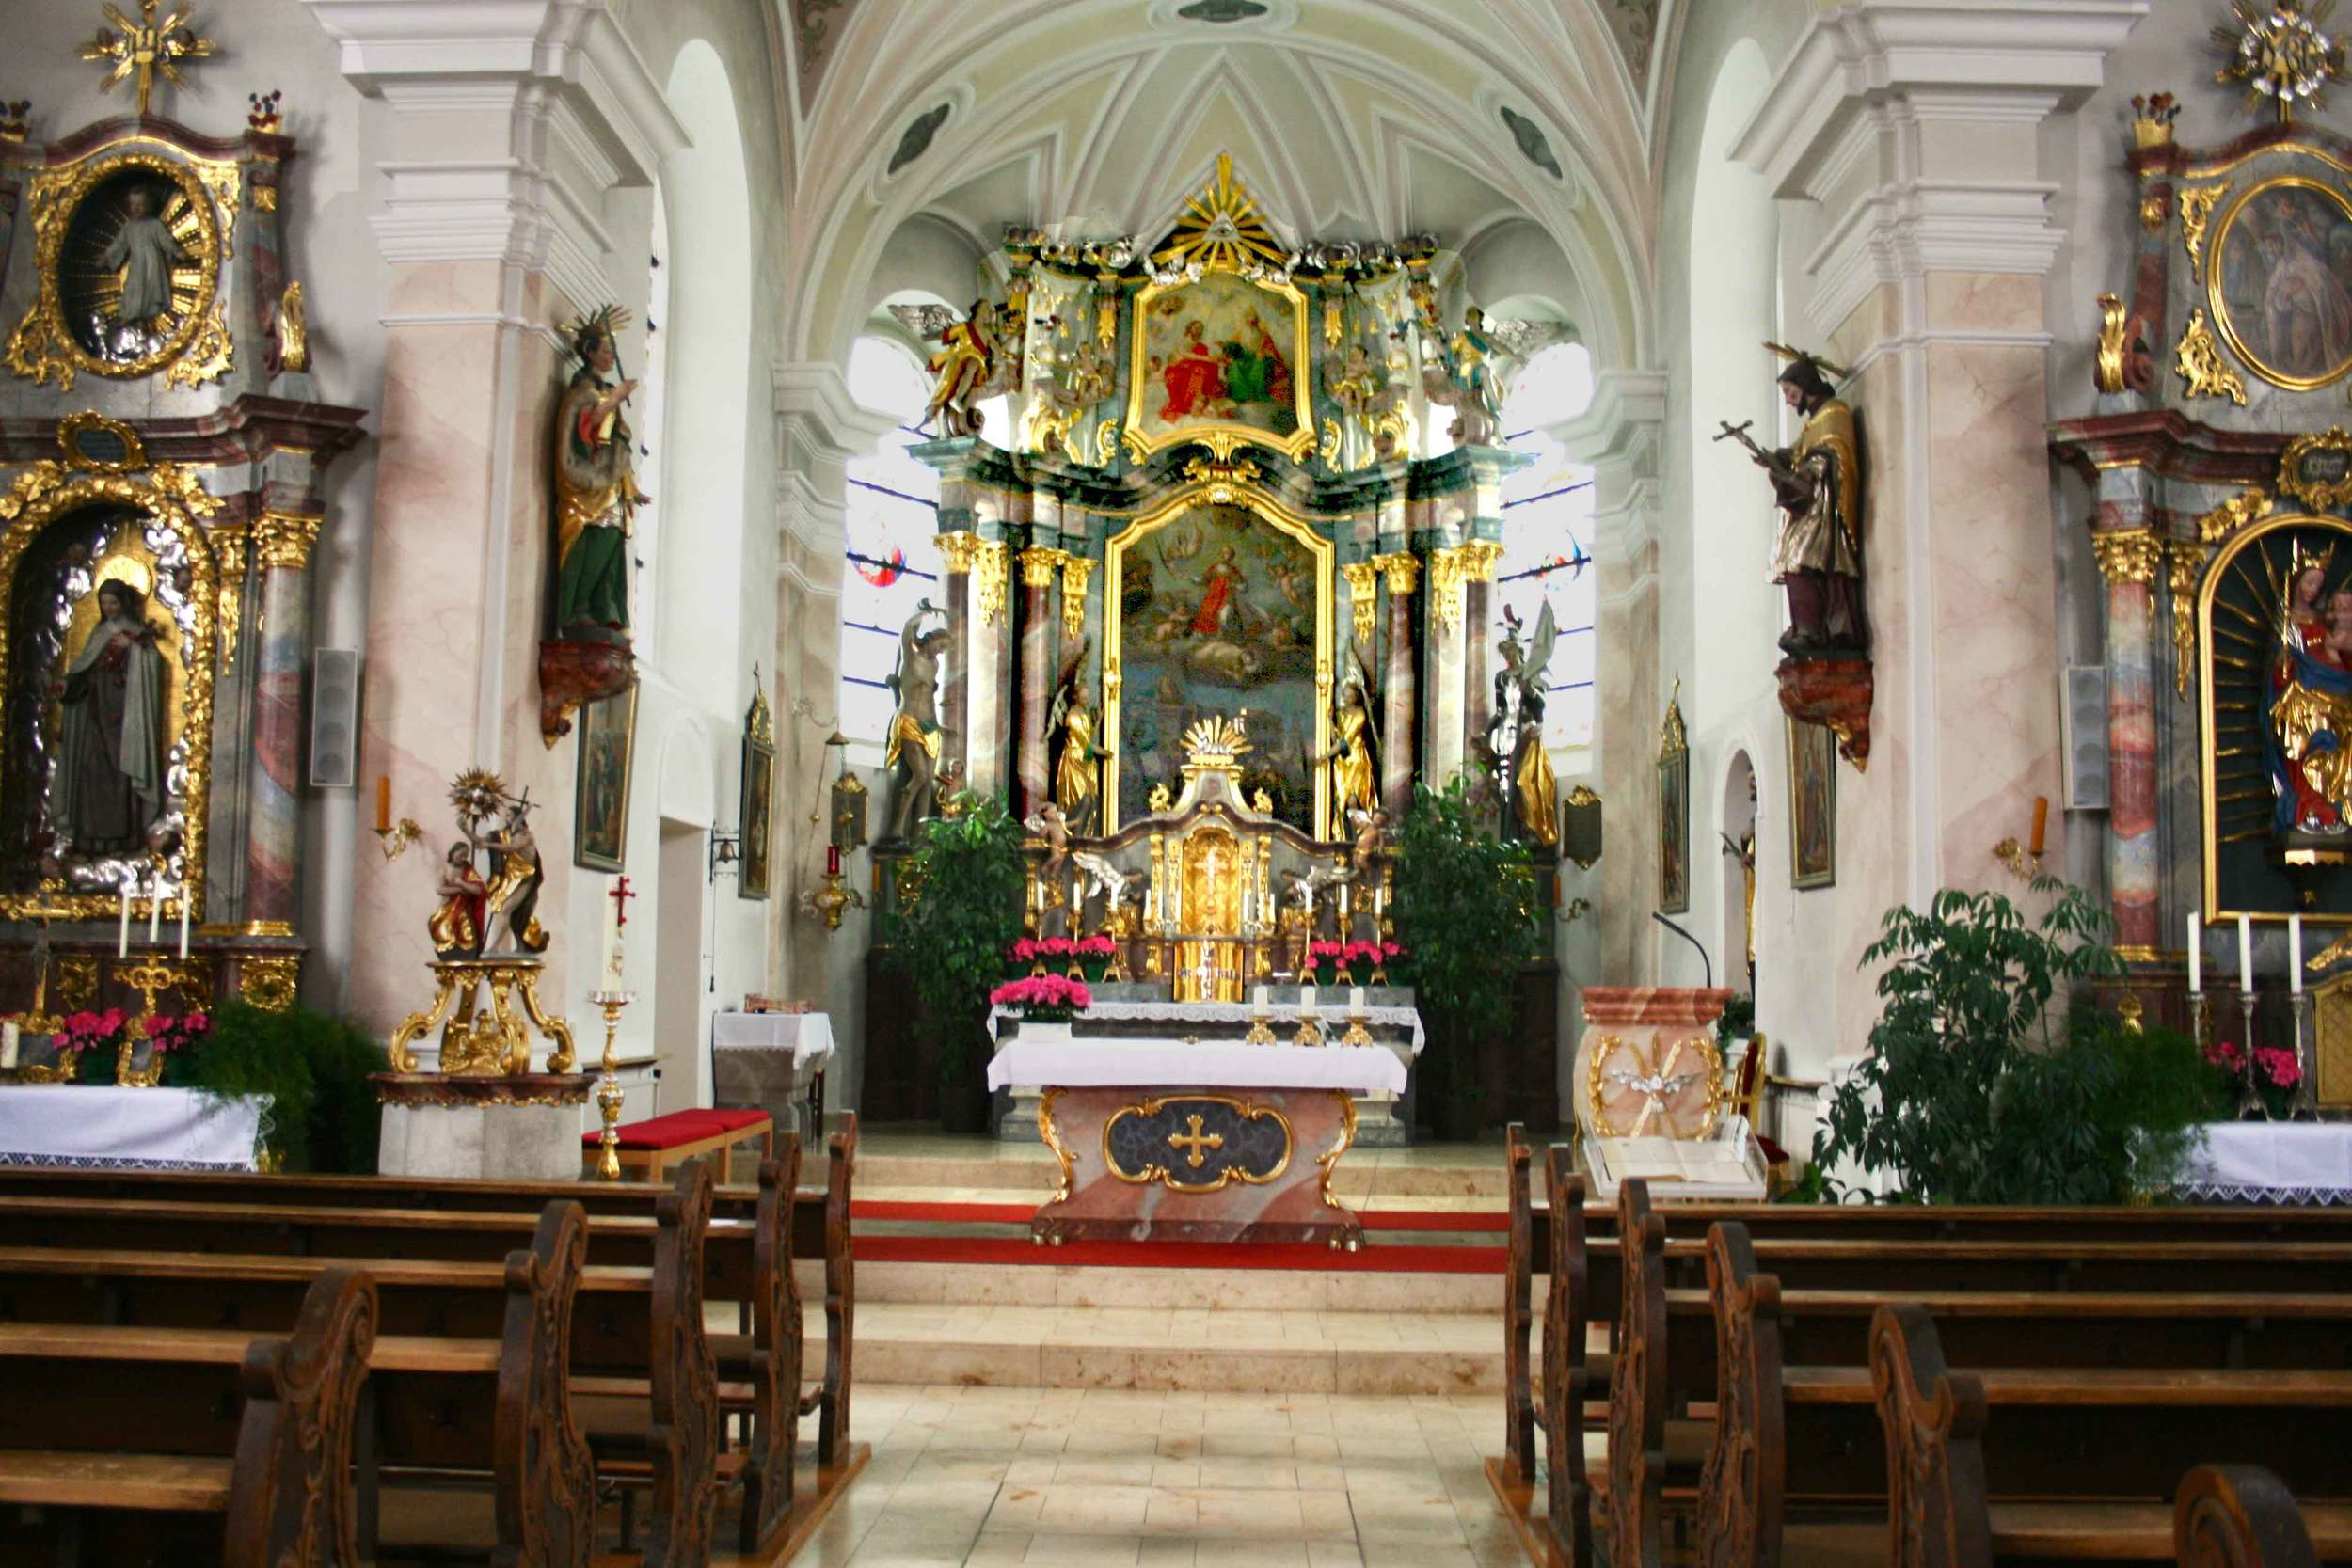 Image©sourcingstyle.com, the interiors of the church in Konnersreuth where Saint Therese Neumann used to pray, Bavaria, Germany.